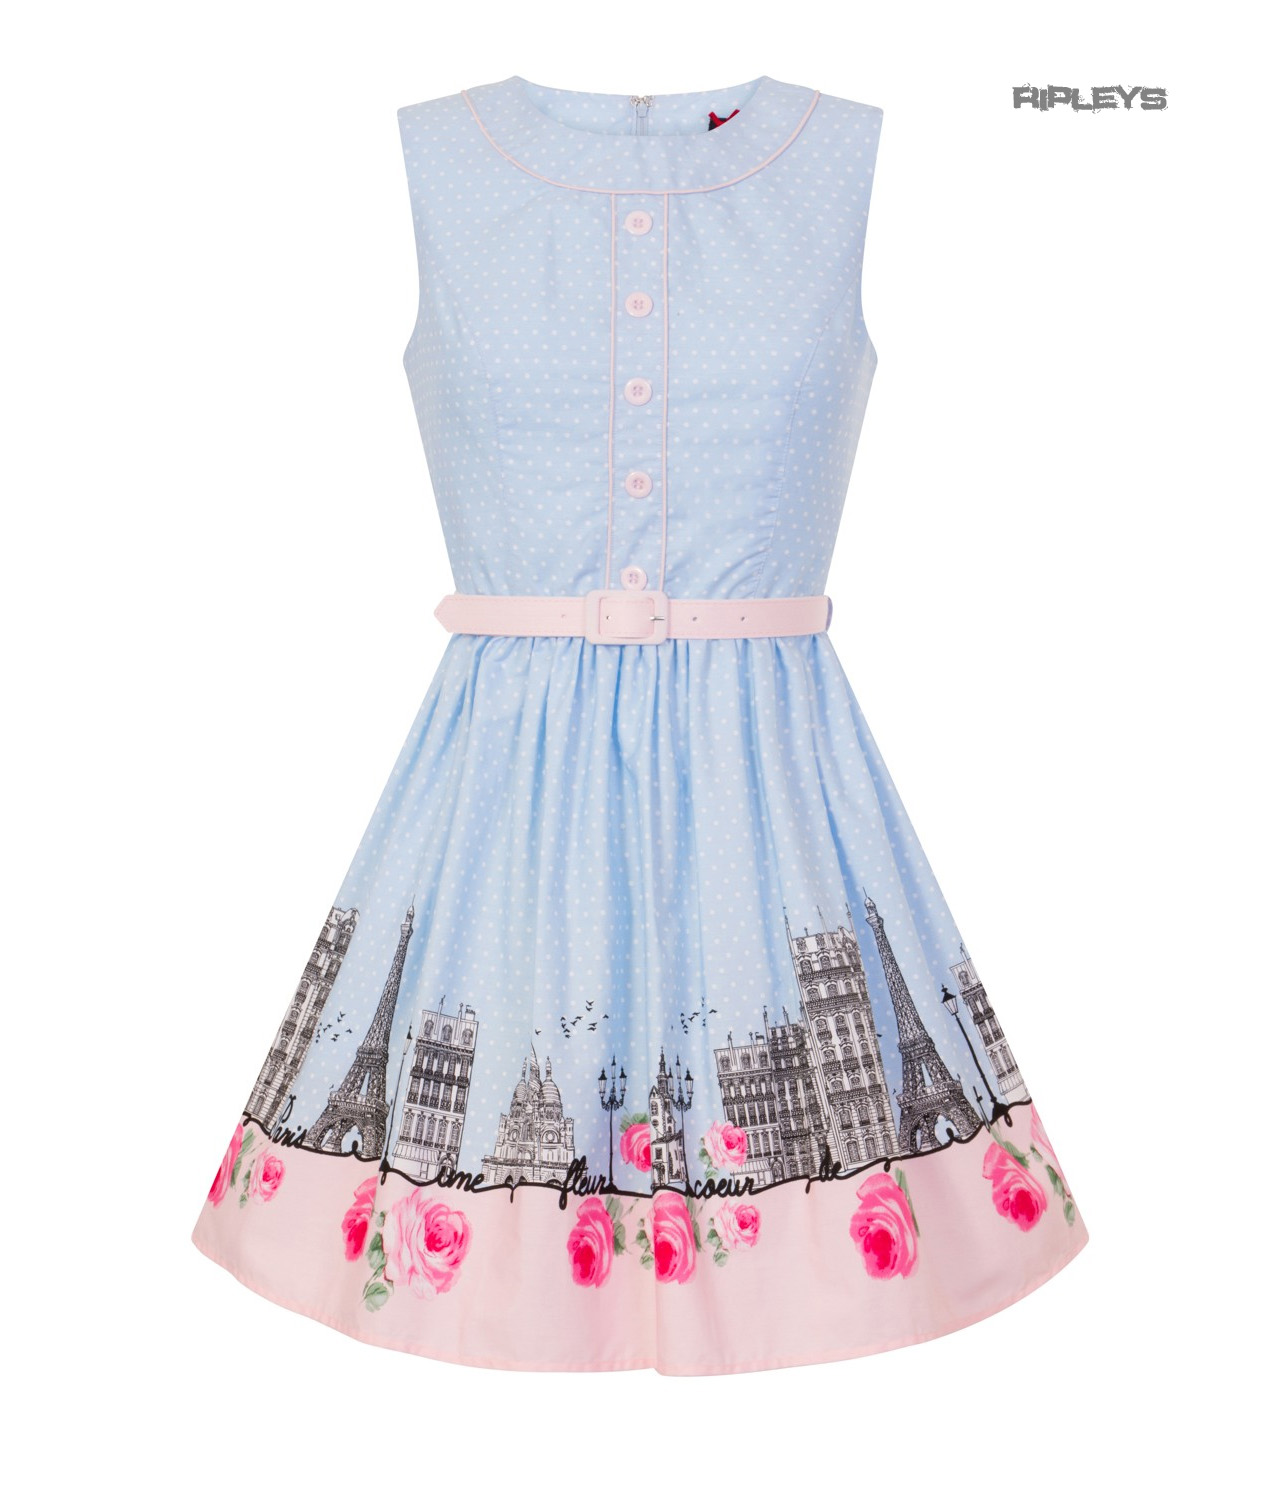 Hell-Bunny-50s-Vintage-Blue-Polka-Dot-PANAME-Mini-Dress-Paris-All-Sizes thumbnail 34